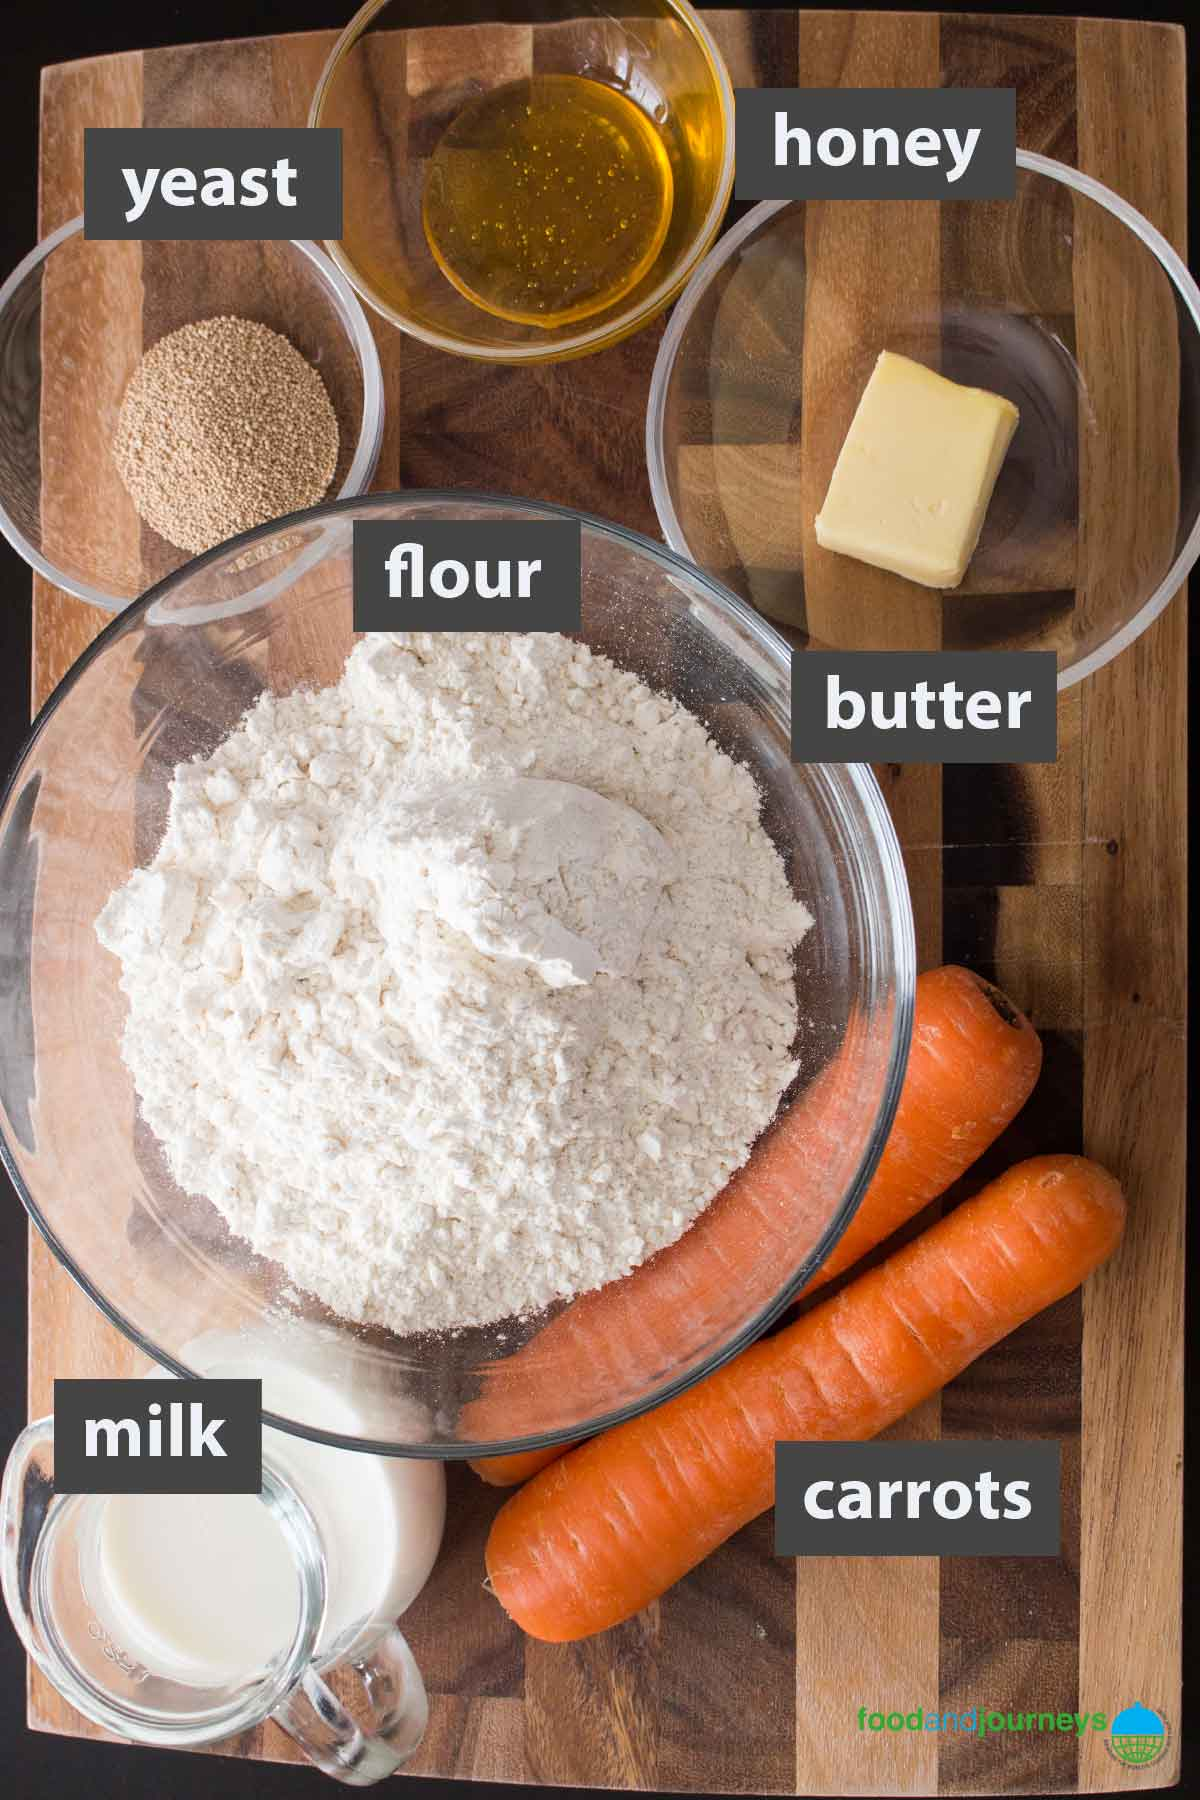 An image showing all the ingredients you need to prepare carrot bread rolls at home.